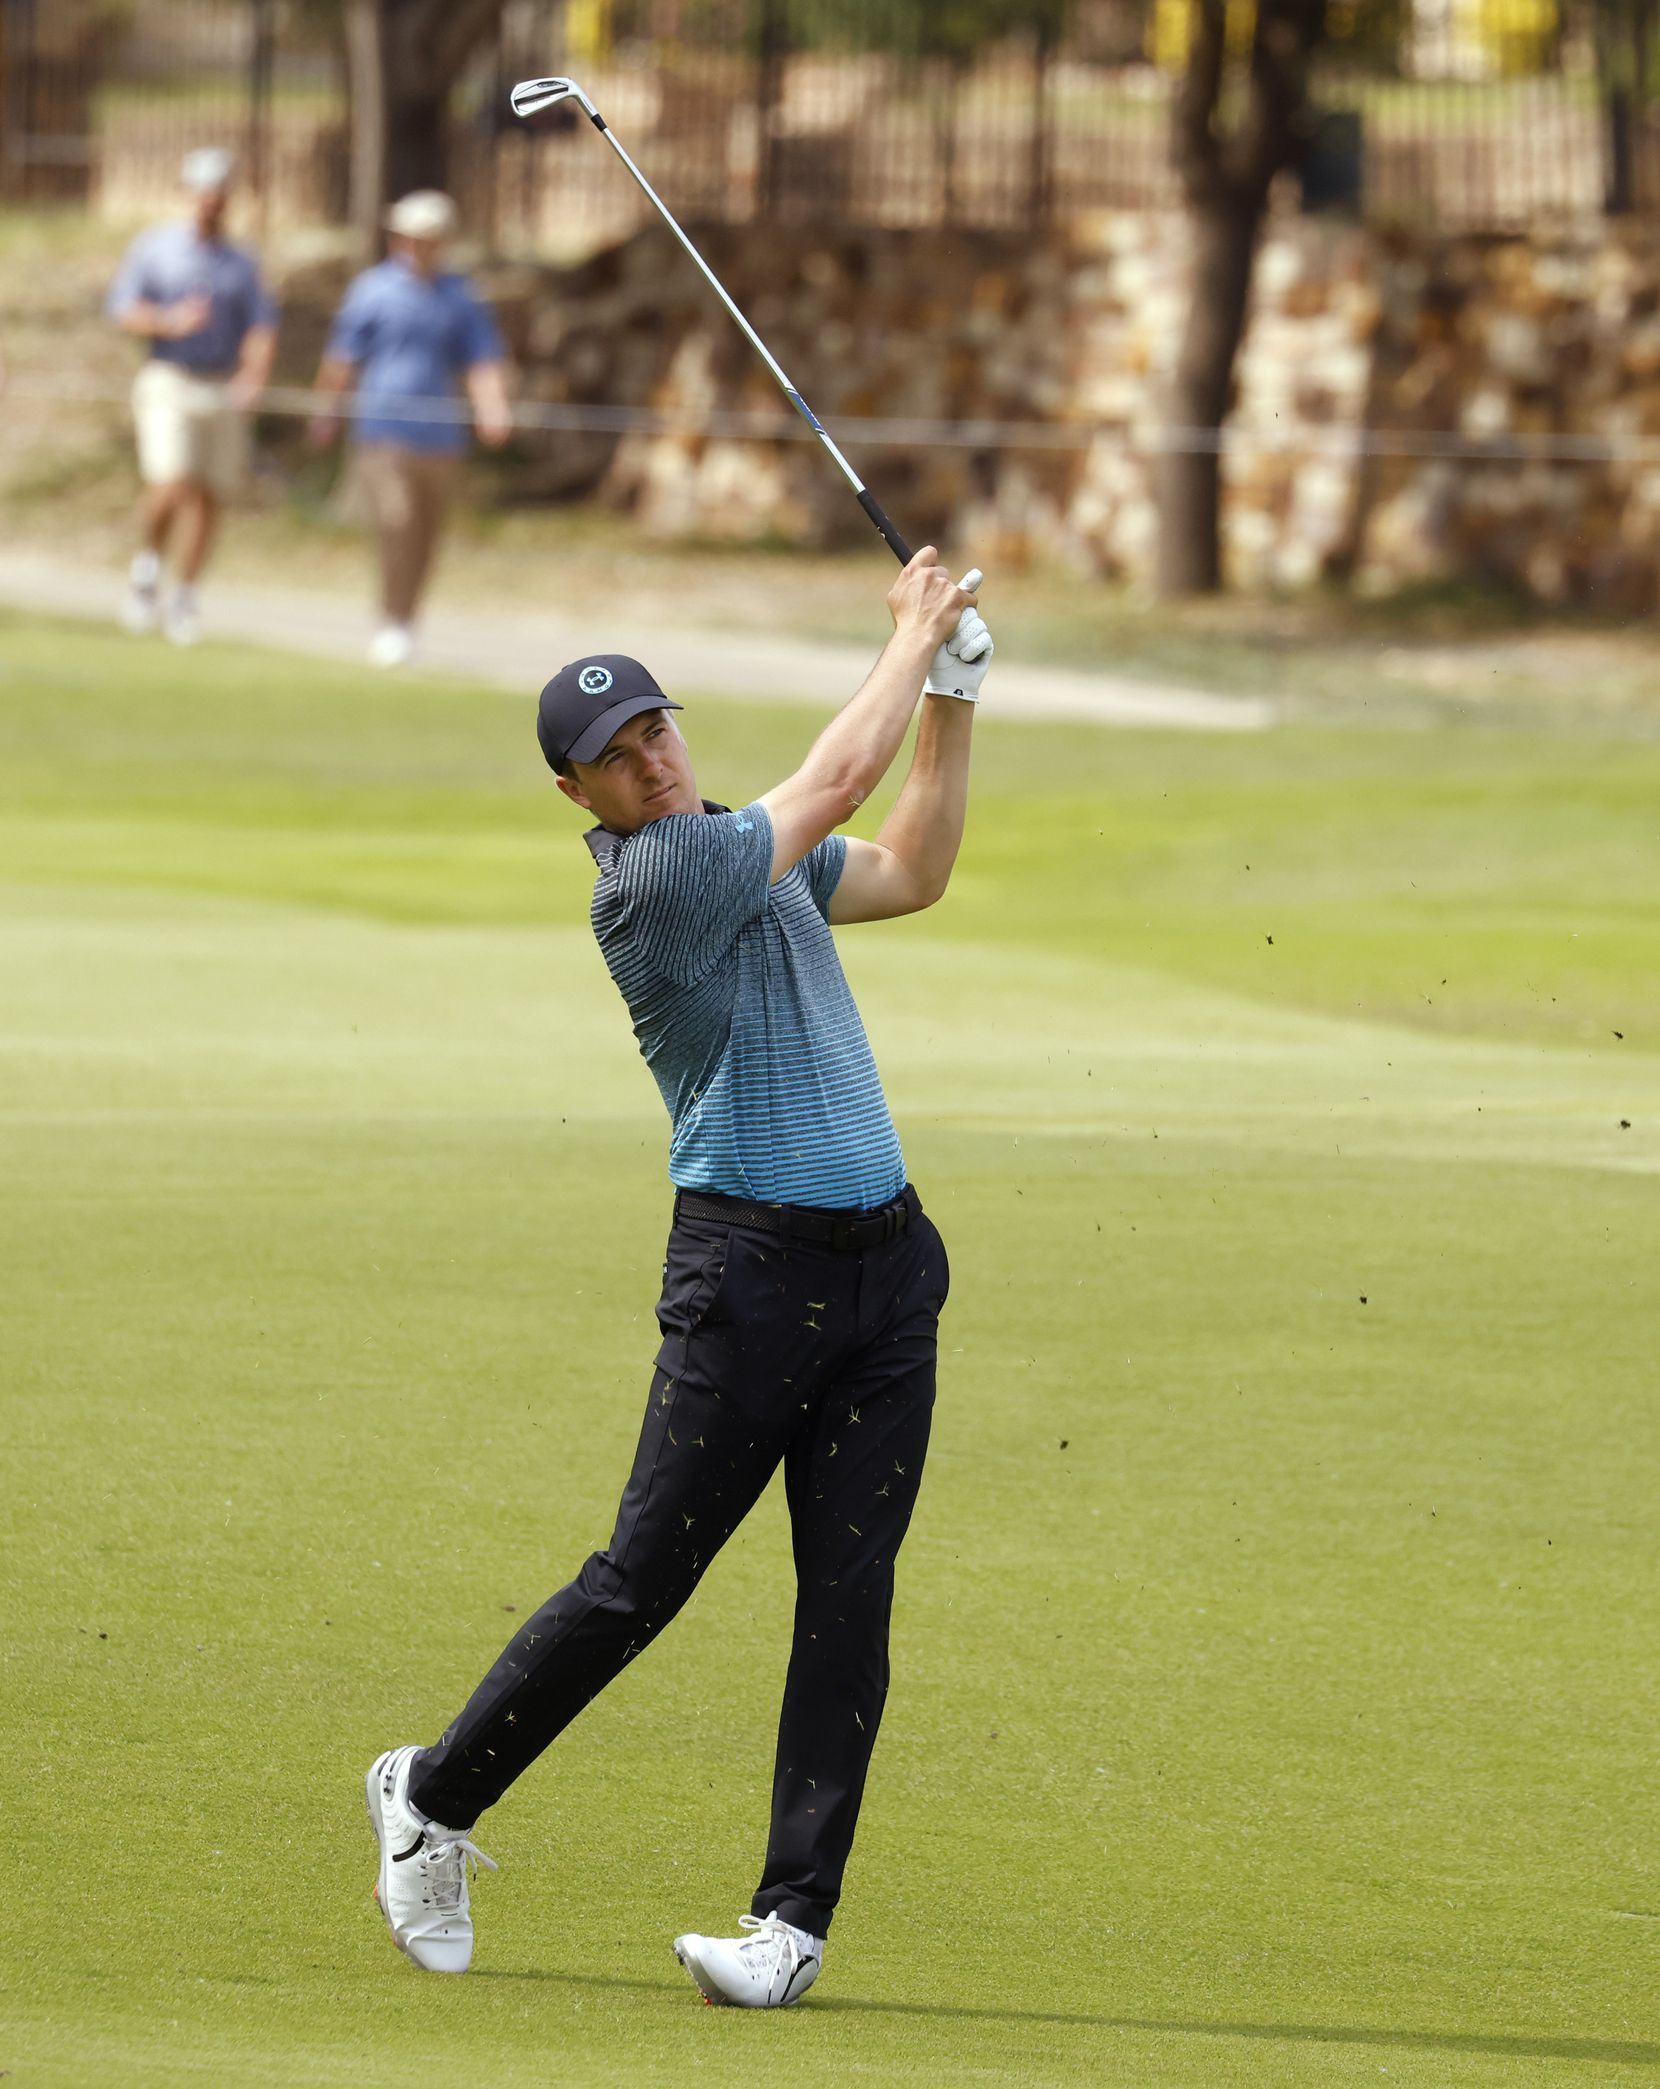 Jordan Spieth watches after hitting from the fairway of the 16th hole during round 3 of the AT&T Byron Nelson  at TPC Craig Ranch on Saturday, May 15, 2021 in McKinney, Texas. (Vernon Bryant/The Dallas Morning News)